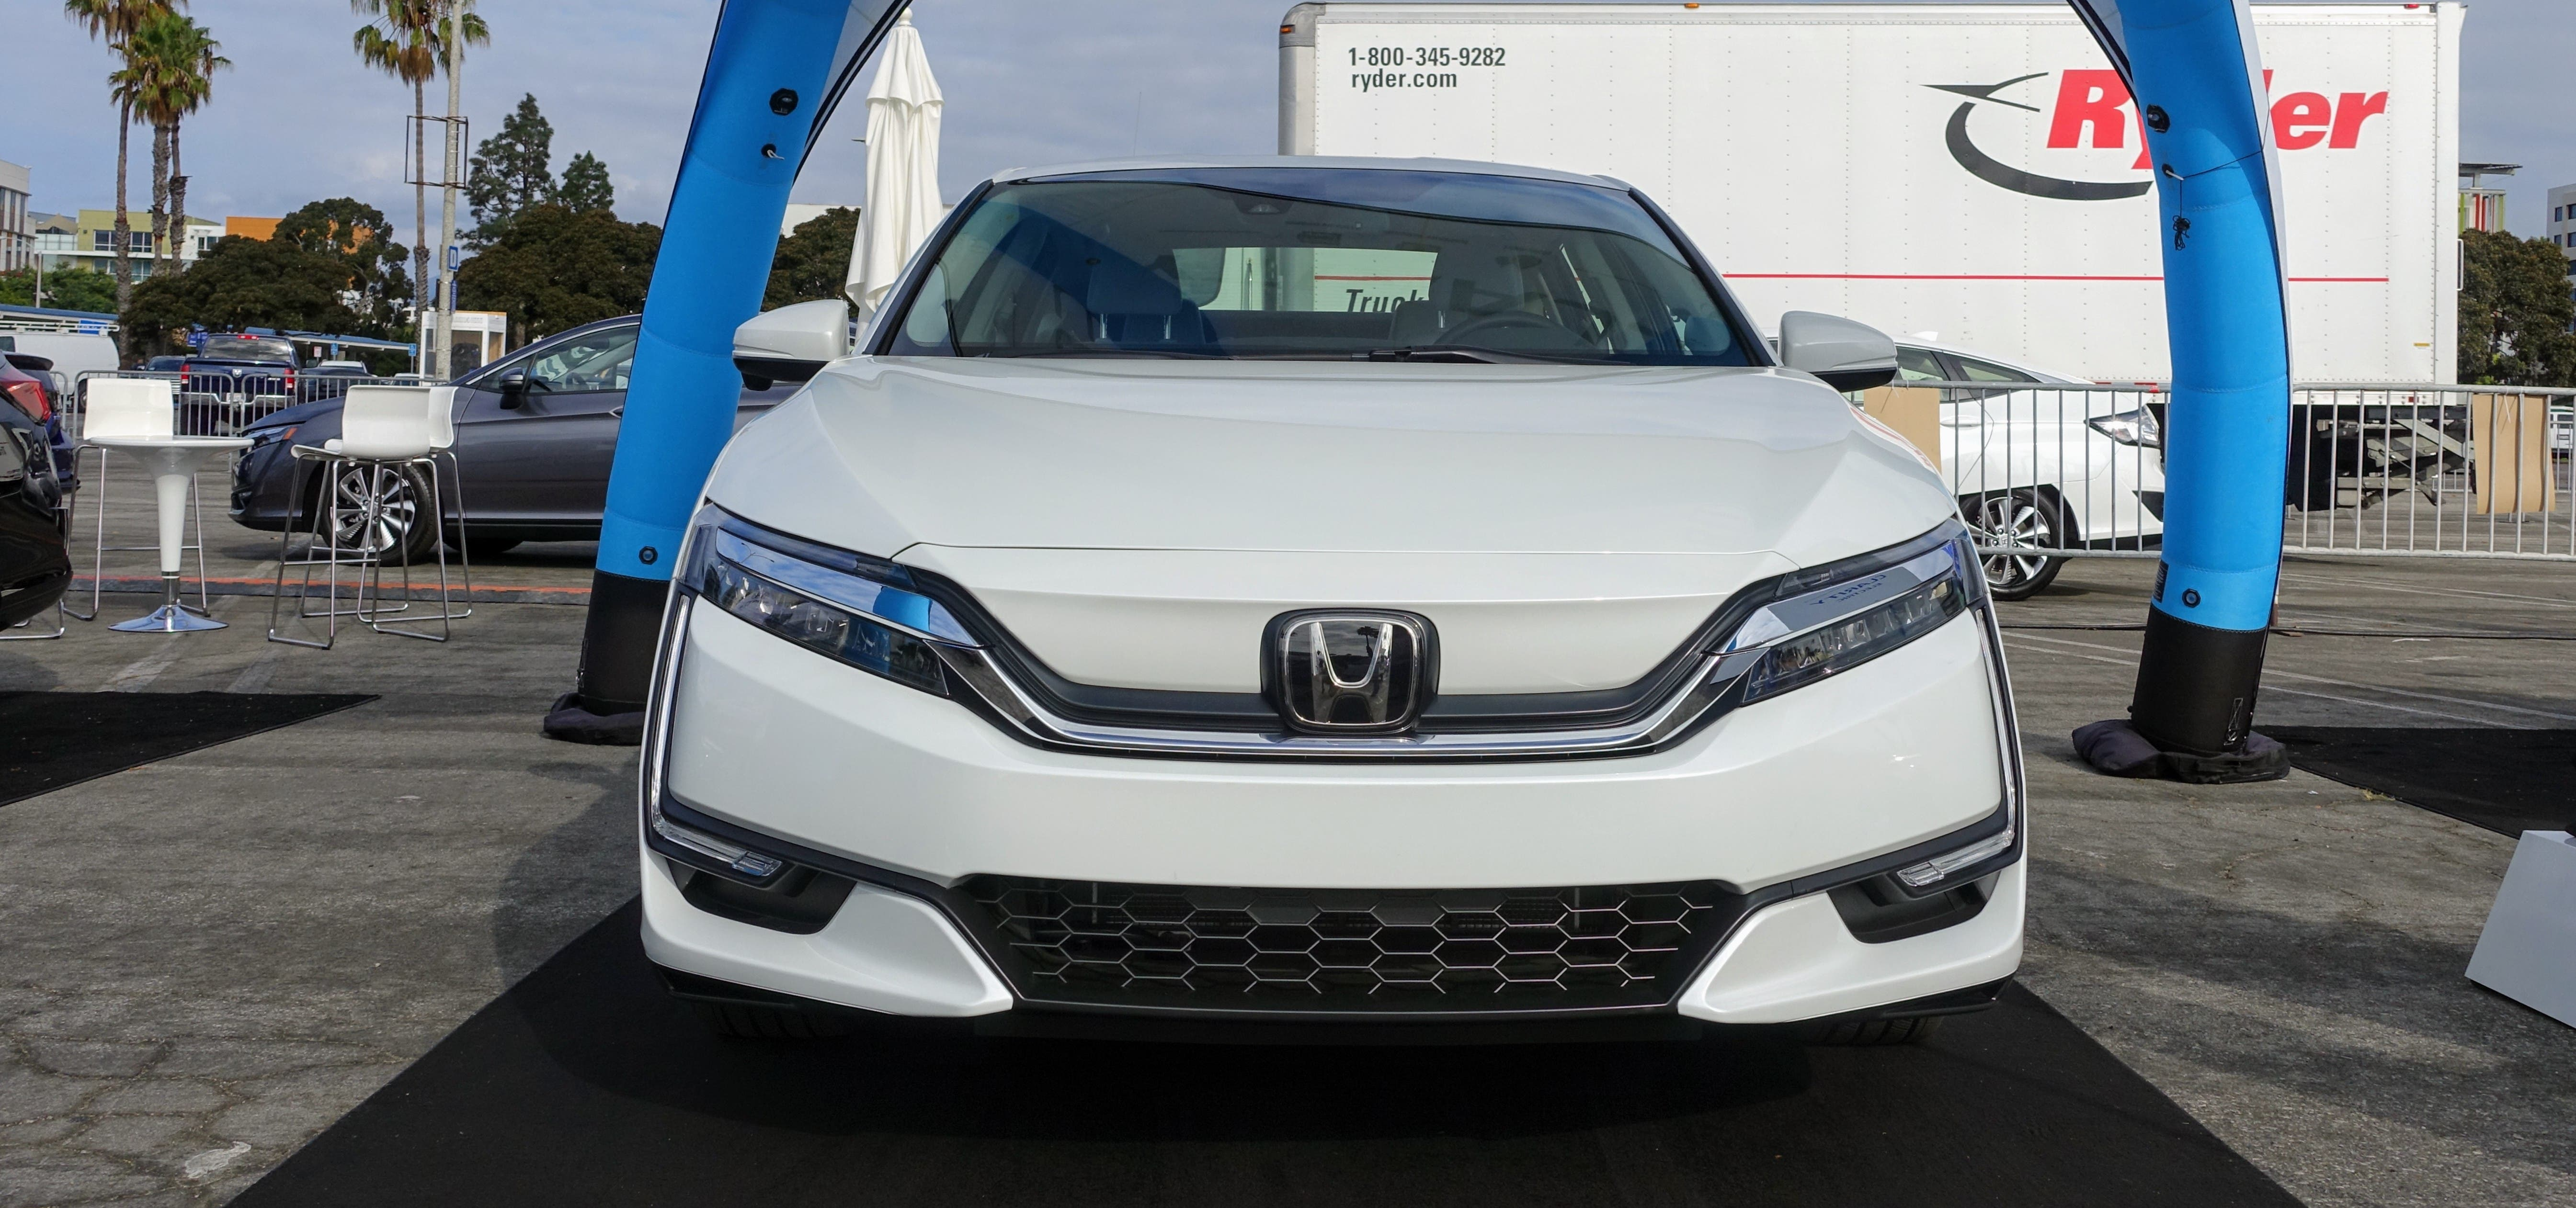 Our Recent Stories About The Honda Clarity Phev Have Generated A Lot Of Interest And Tons Questions Recently I Got An Email From Aaron